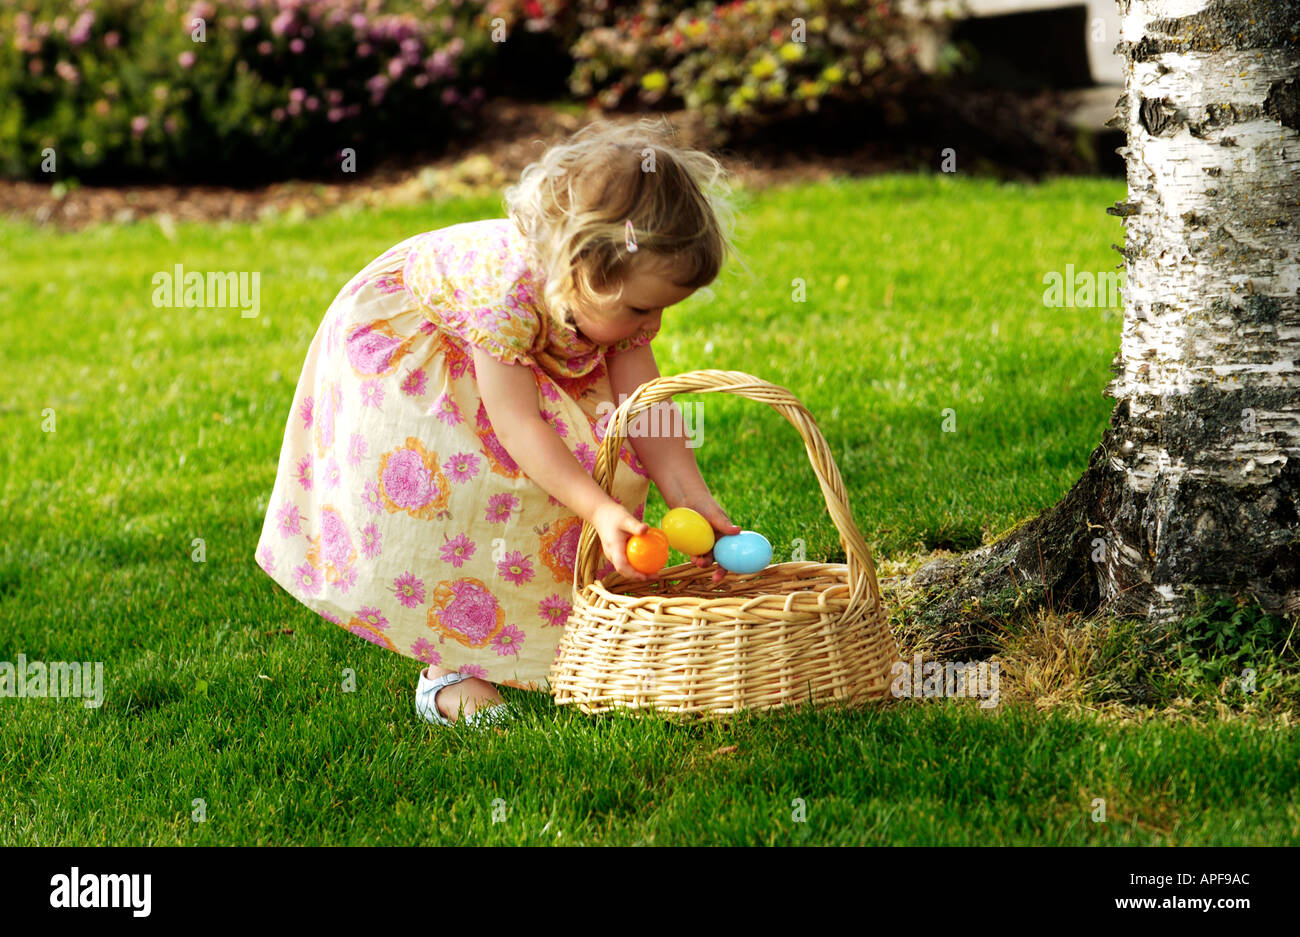 Two year old girl putting easter eggs into basket - Stock Image